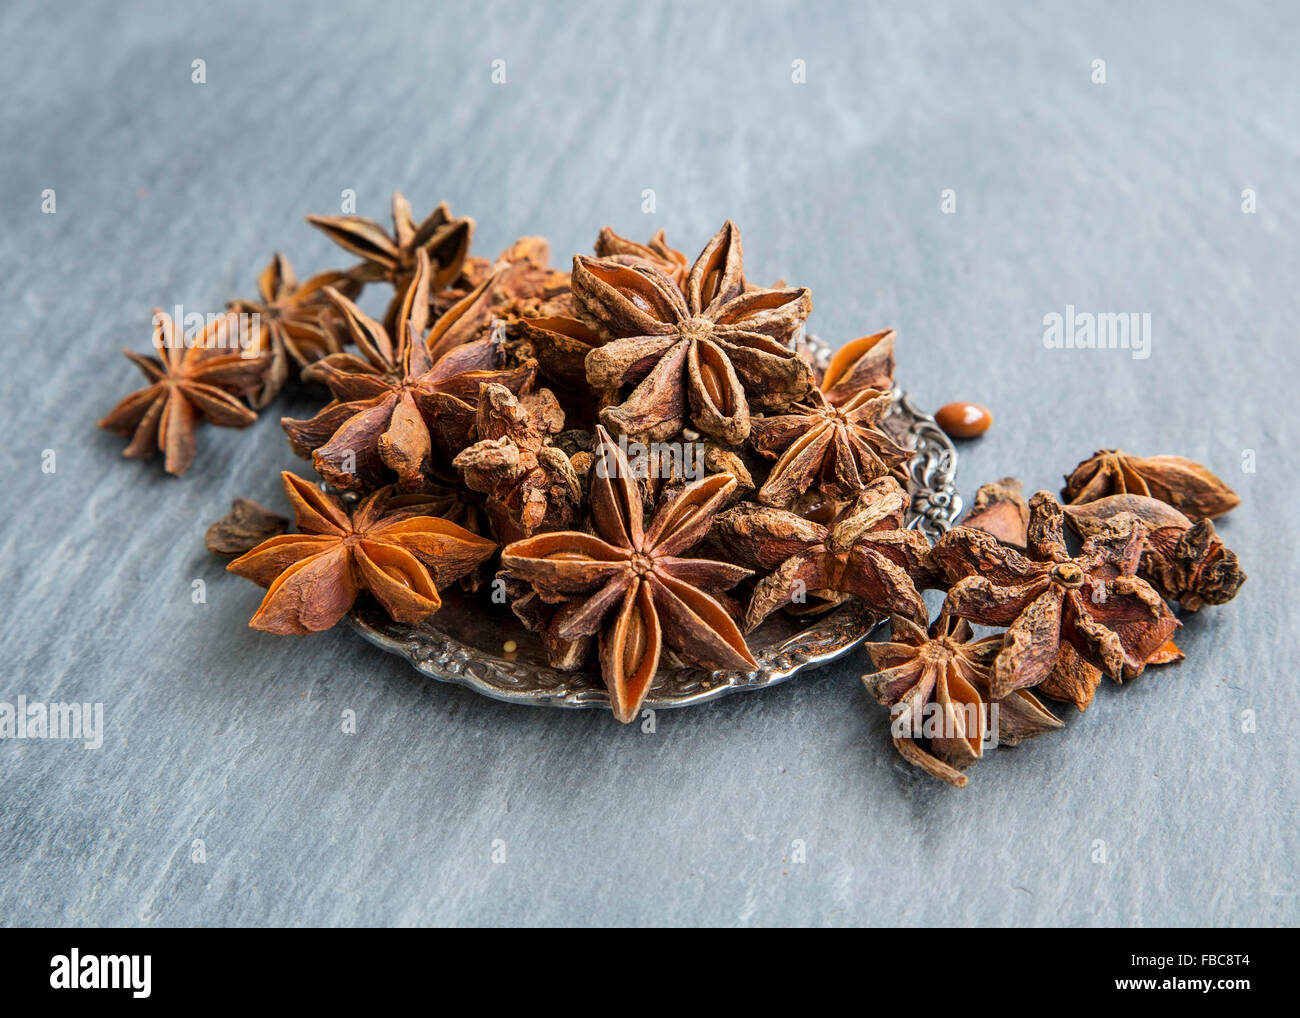 Anise Stars , Healthy Aromatic Condiment - Stock Image